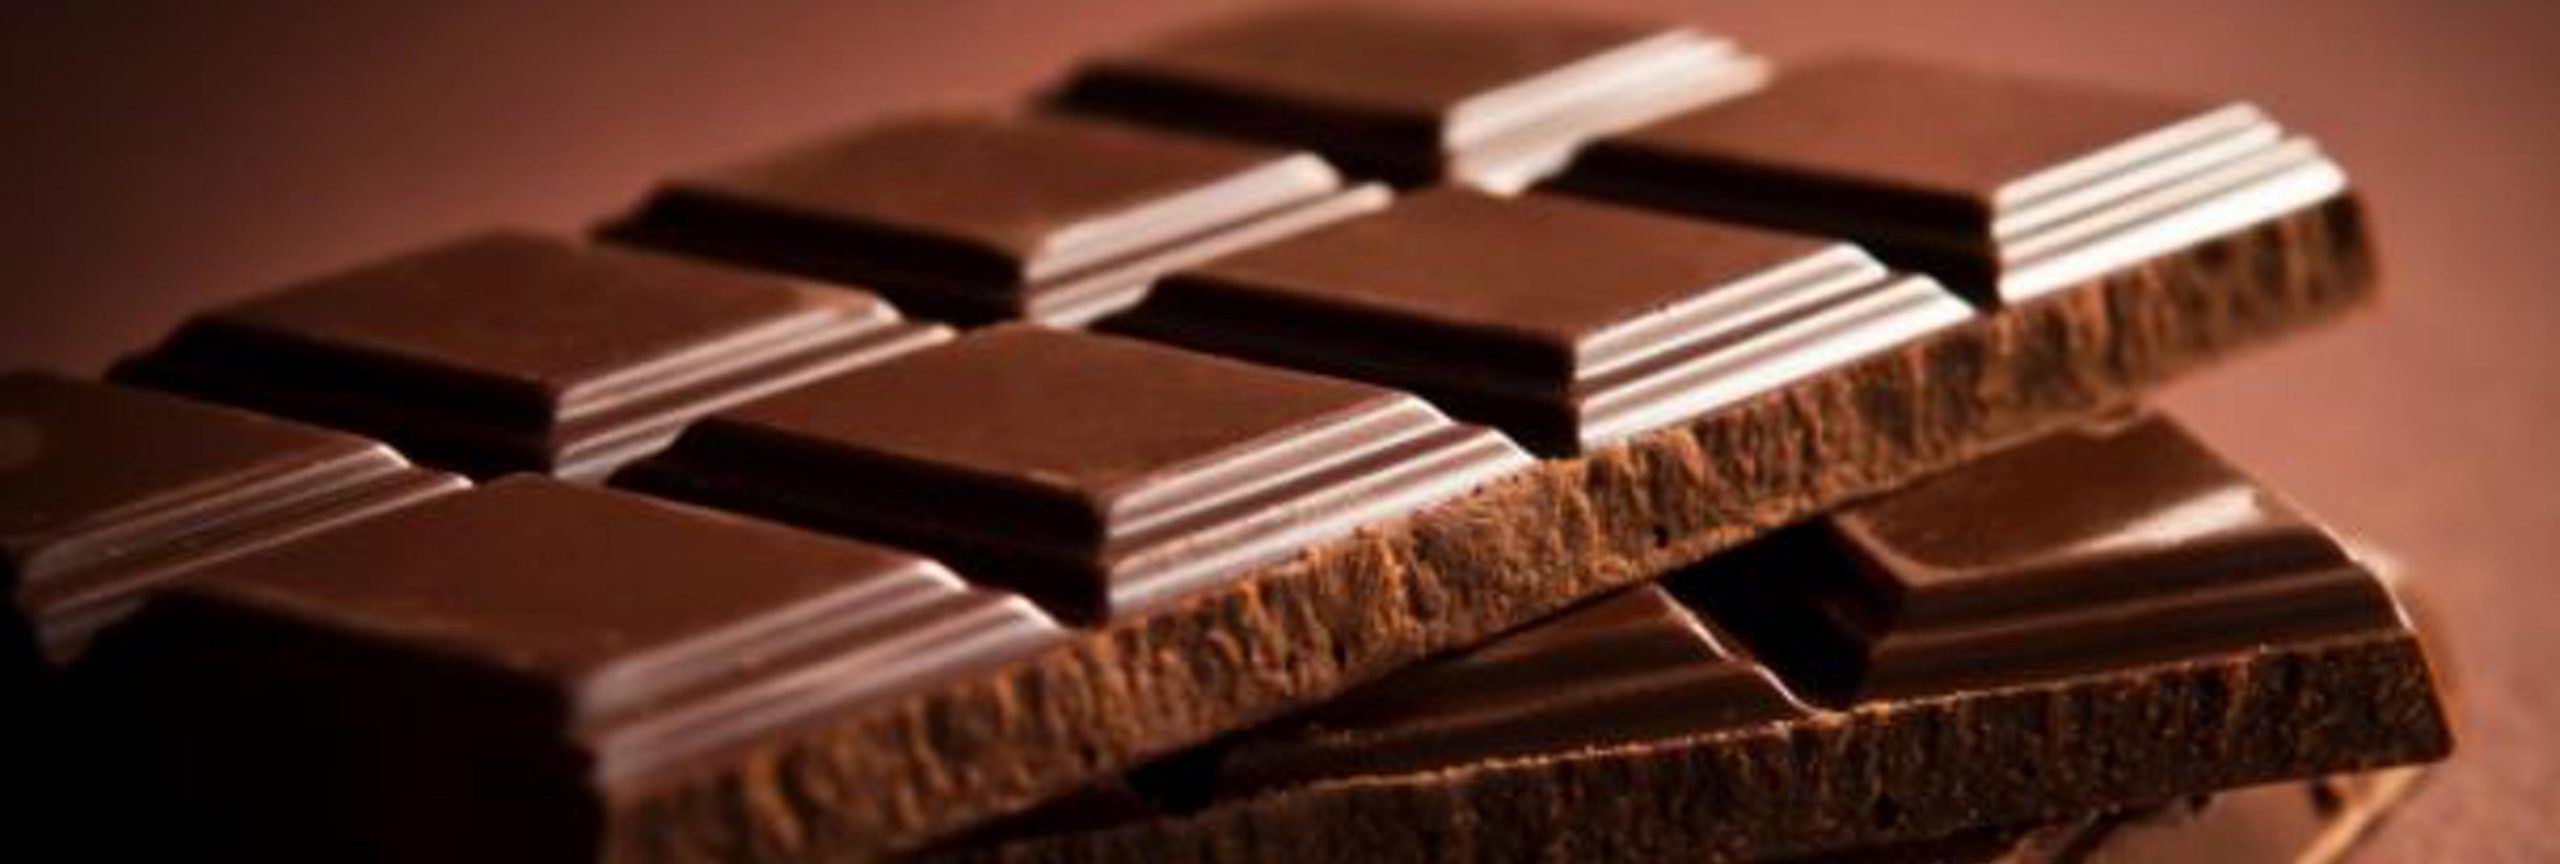 The Science Behind Chocolate